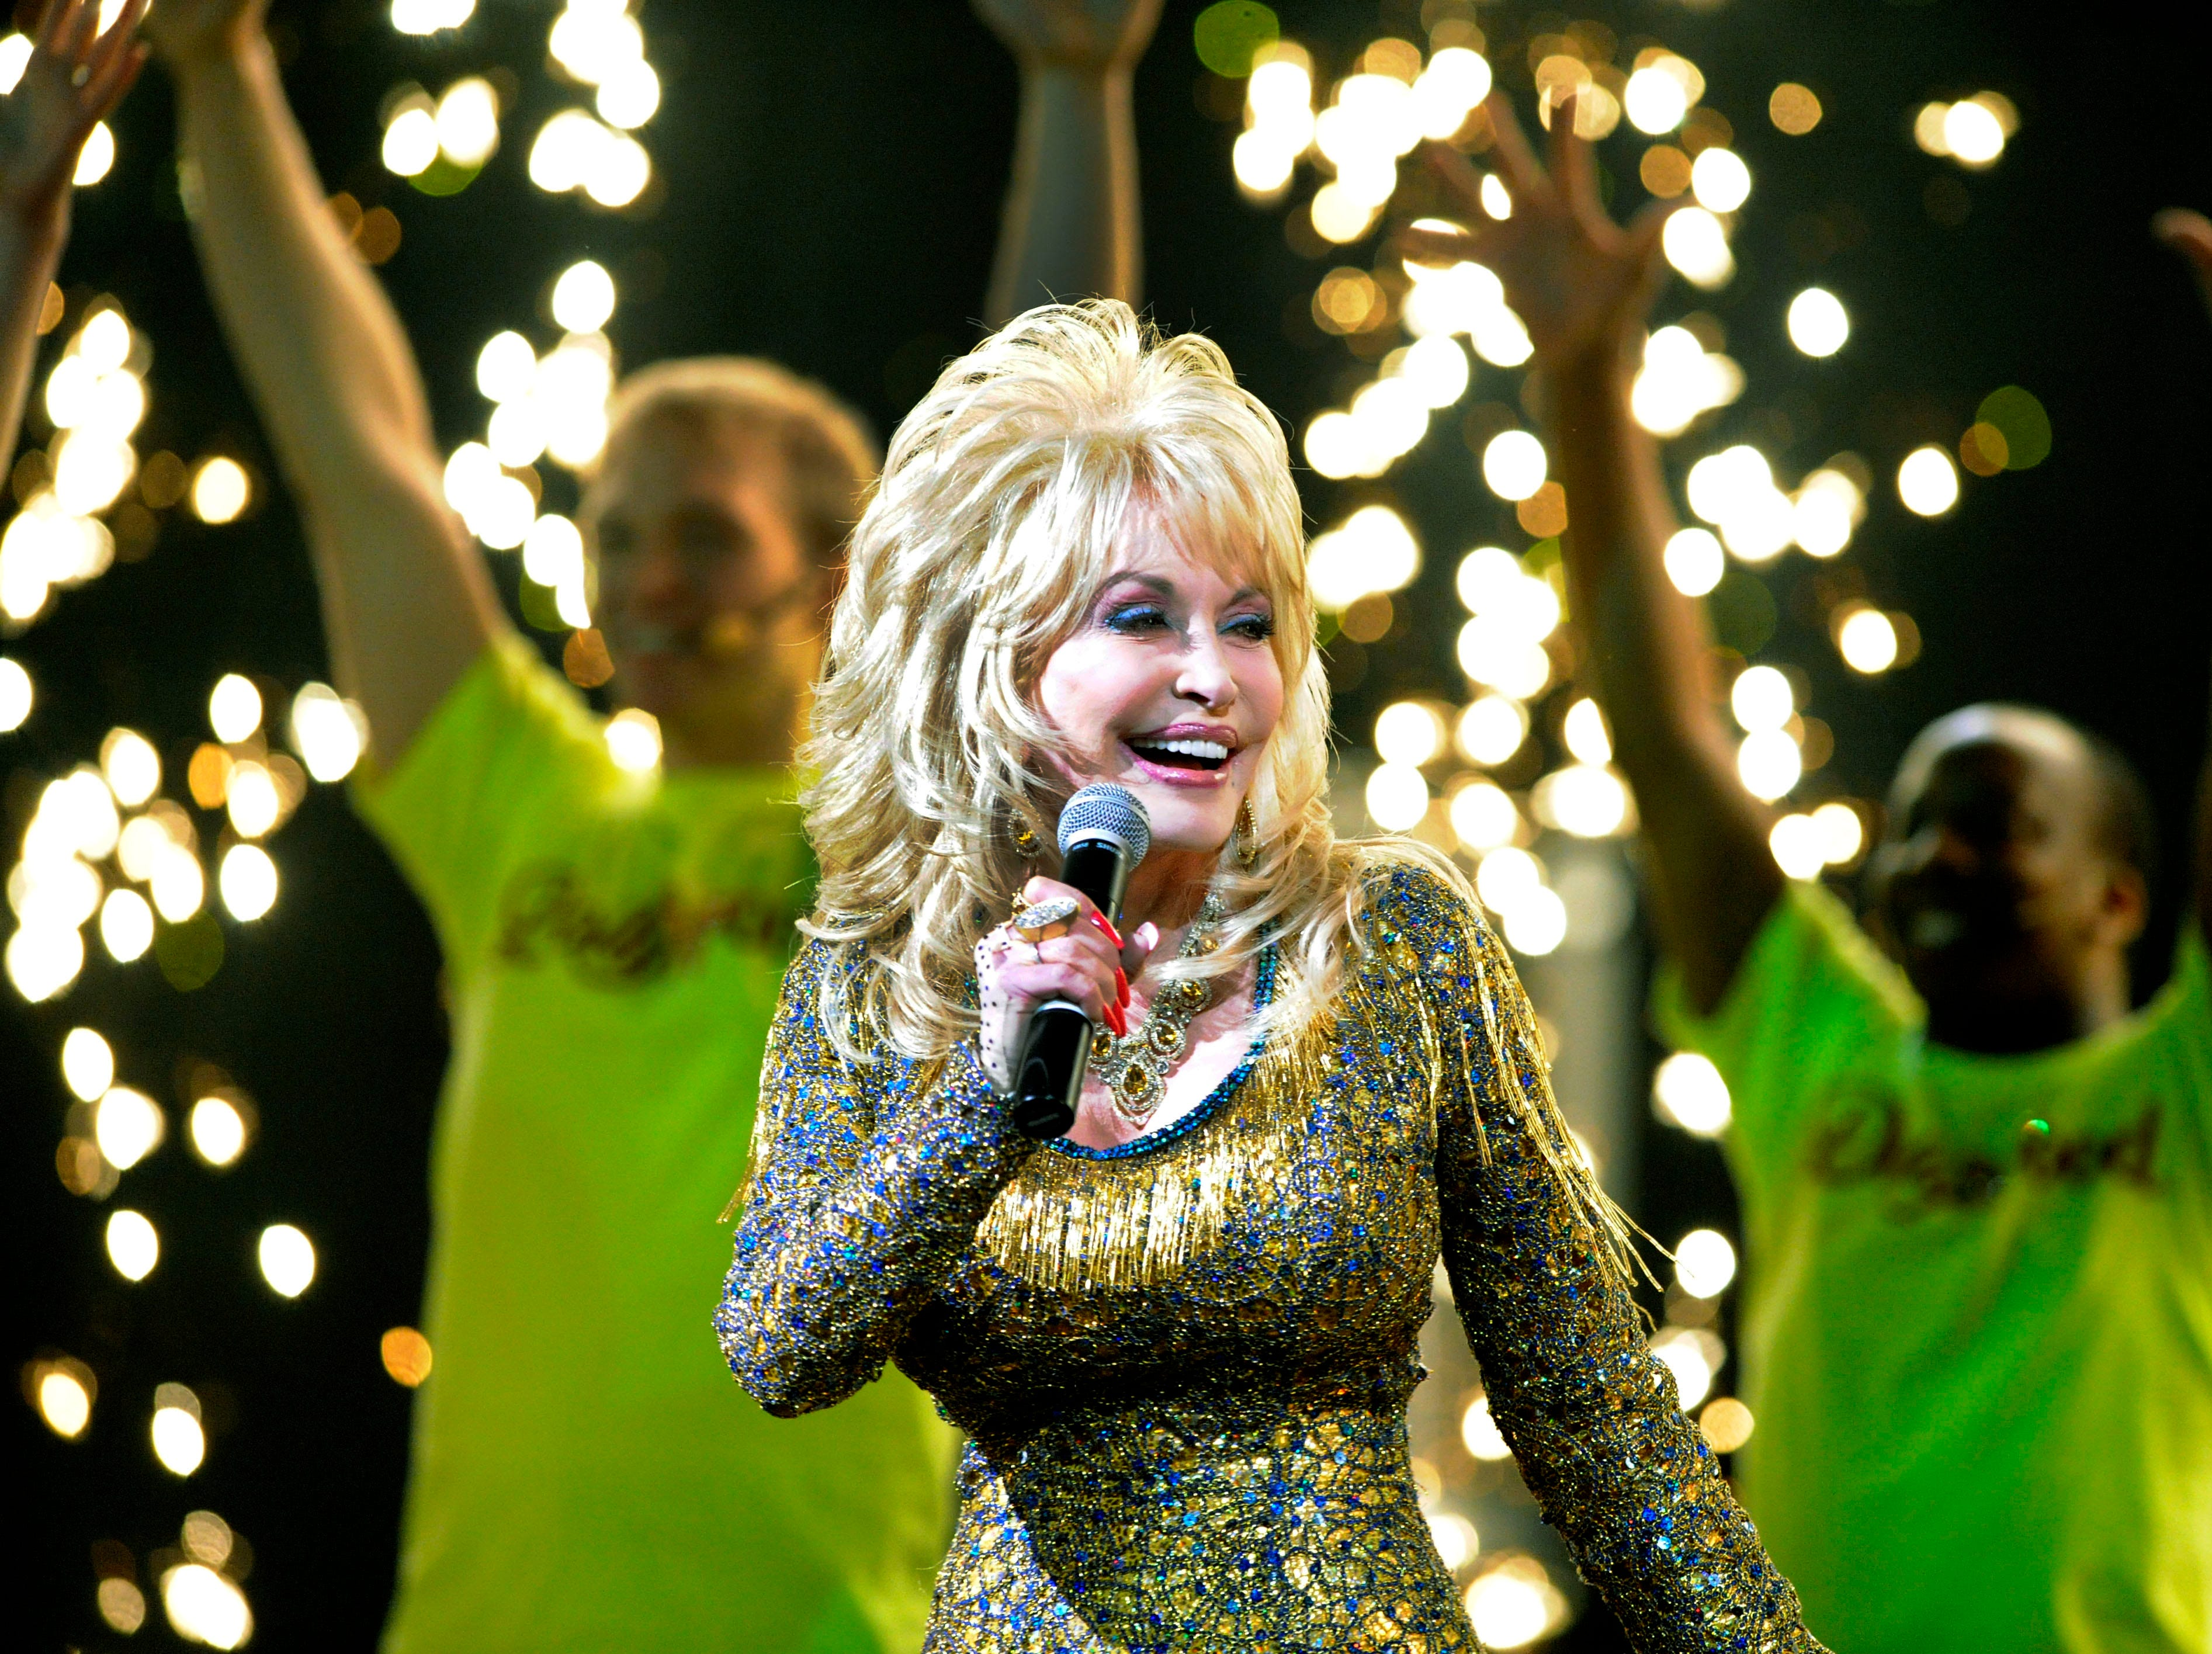 Dolly Parton during her 2013 season preview at Dollywood Friday, Mar. 22, 2013.